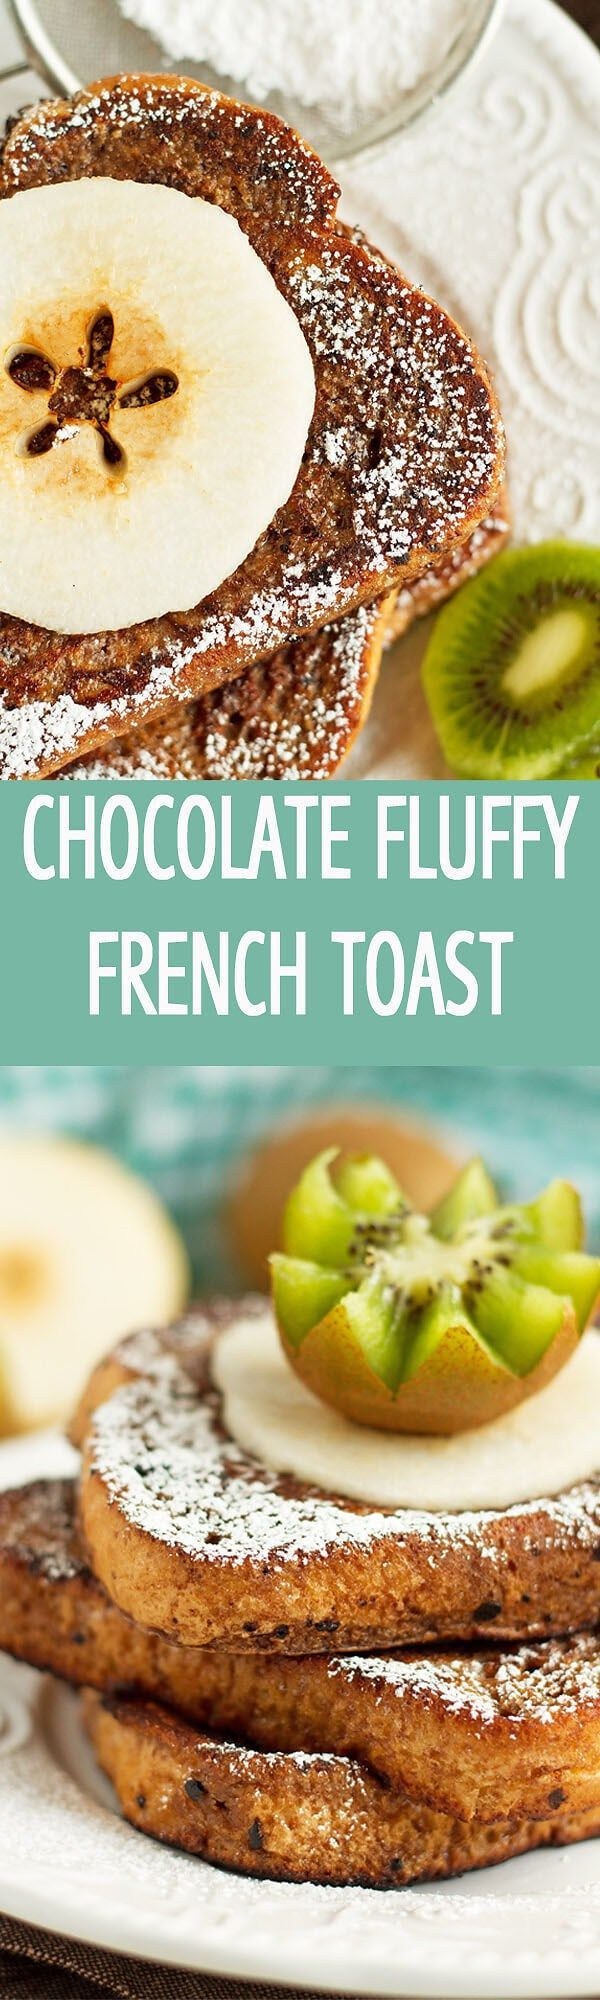 Chocolate Fluffy French Toast recipe made in only 10 minutes with 6 ingredients! Perfect for breakfast or brunch! Served with any fruits by ilonaspassion.com I @ilonaspassion